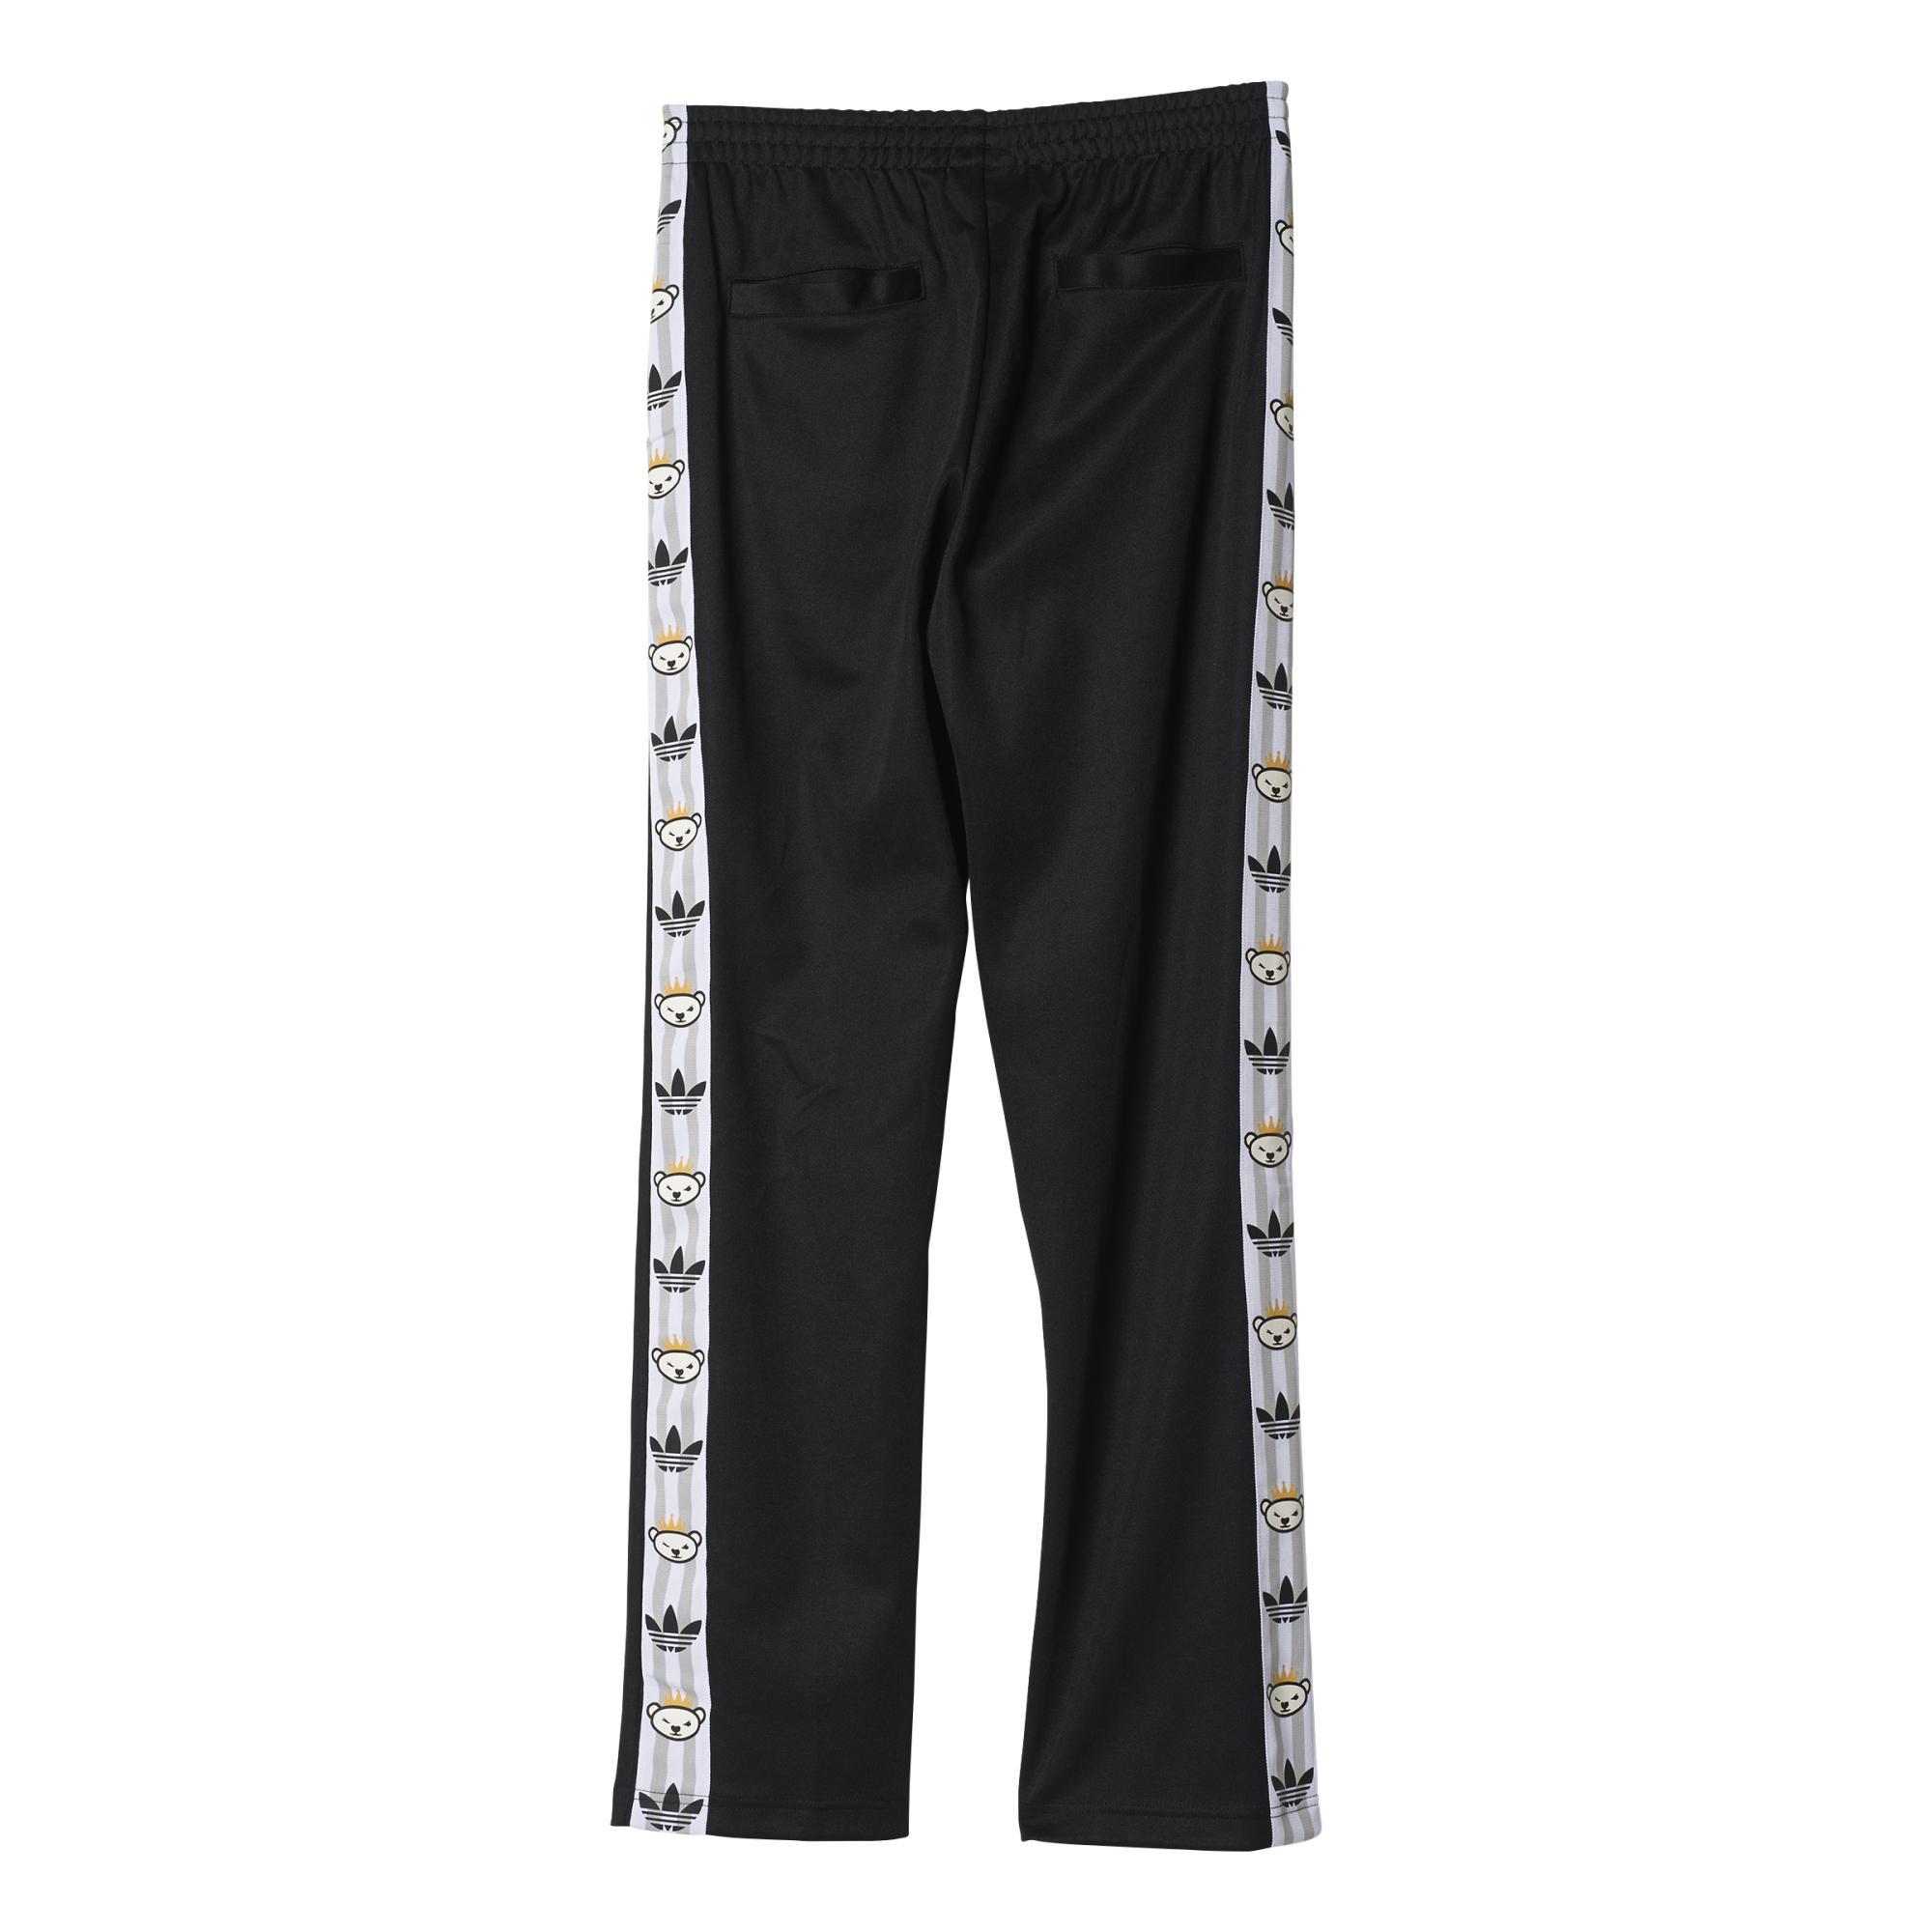 By Adidas Retro negro Pantalón Bear Originals Nigo qr6Inrgpx